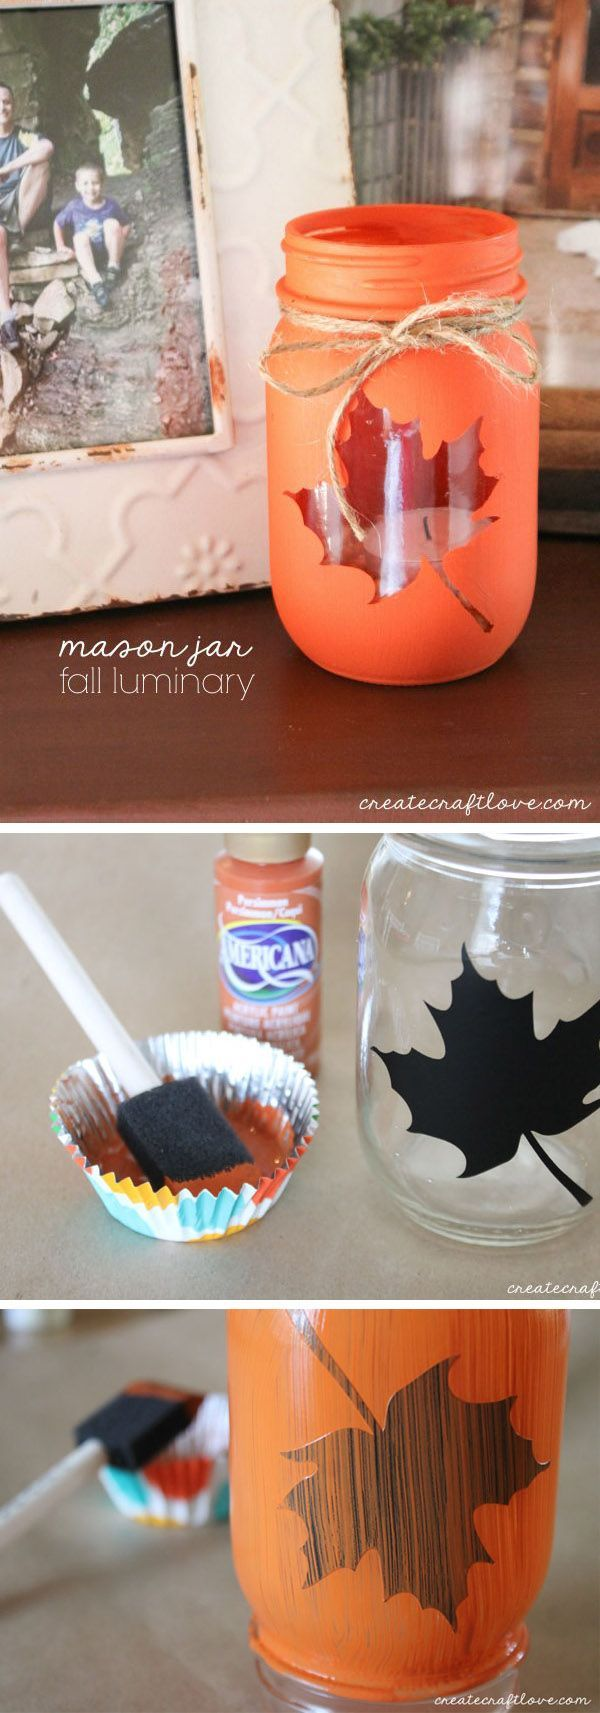 Ten Inspirational DIY Mason Jar Ideas for Weddings #fallcrafts